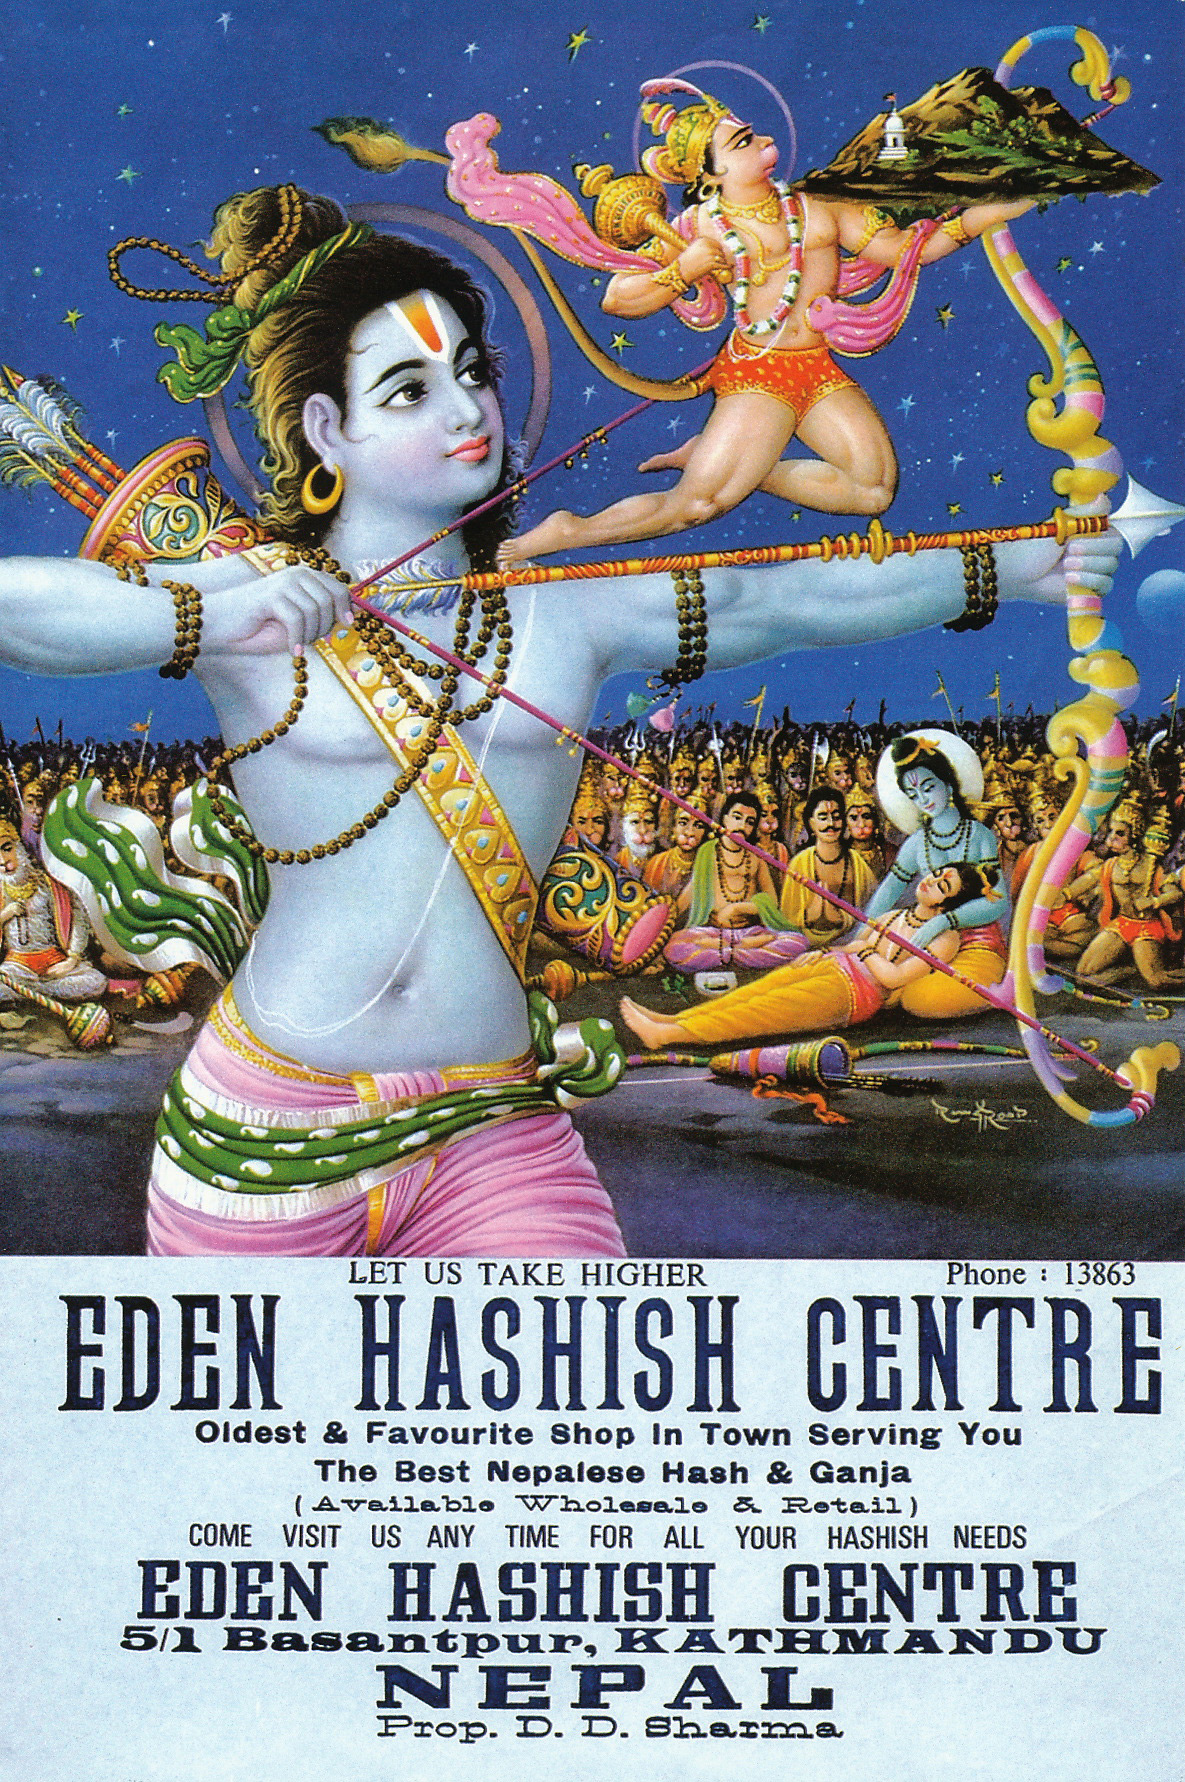 http://jrandomimage.com/images/eden-hashish-centre.jpg